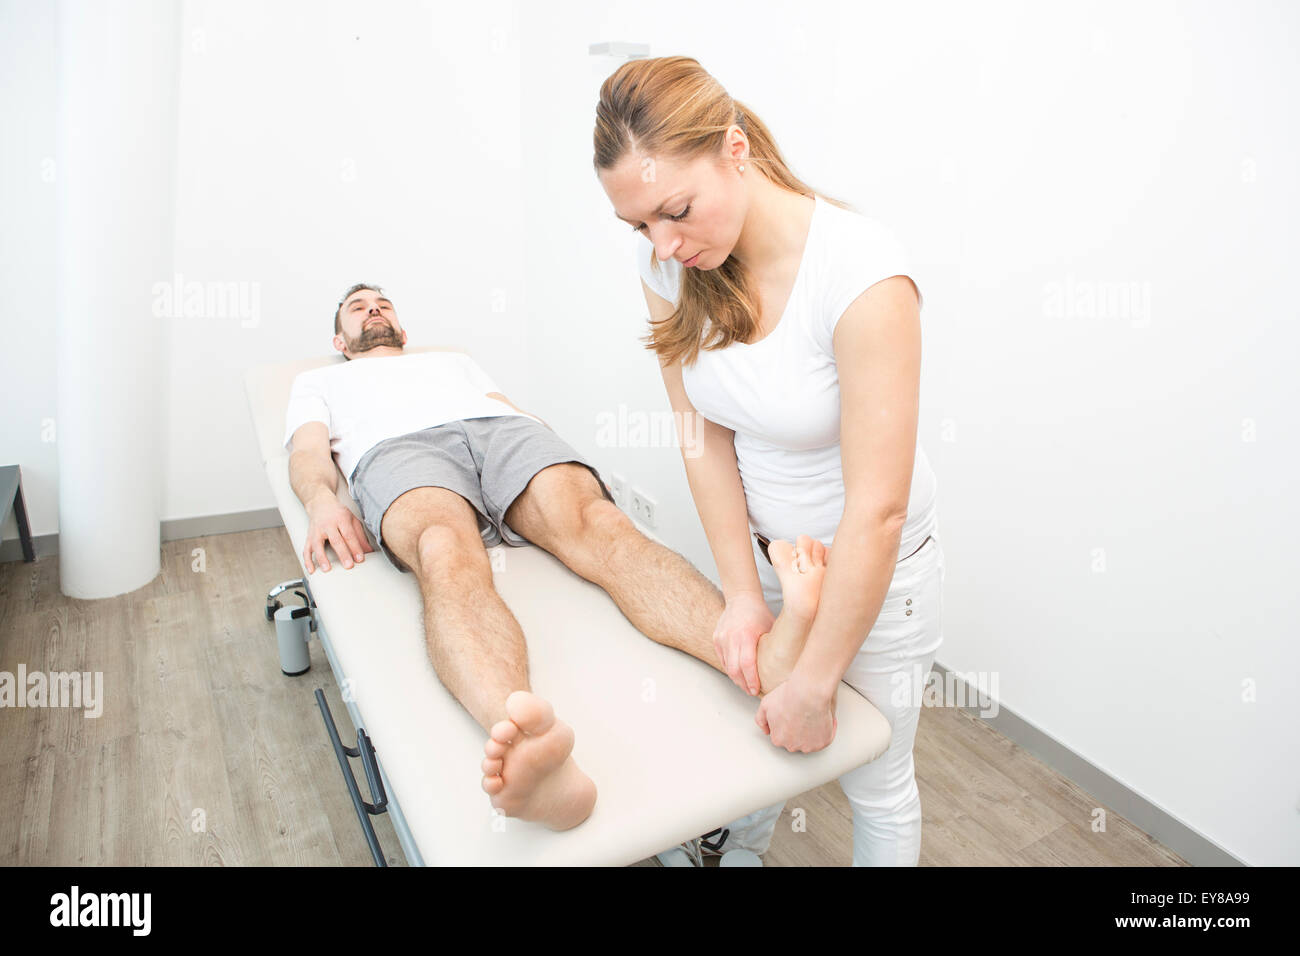 Physiotherapist helping patient to do leg exercise Stock Photo